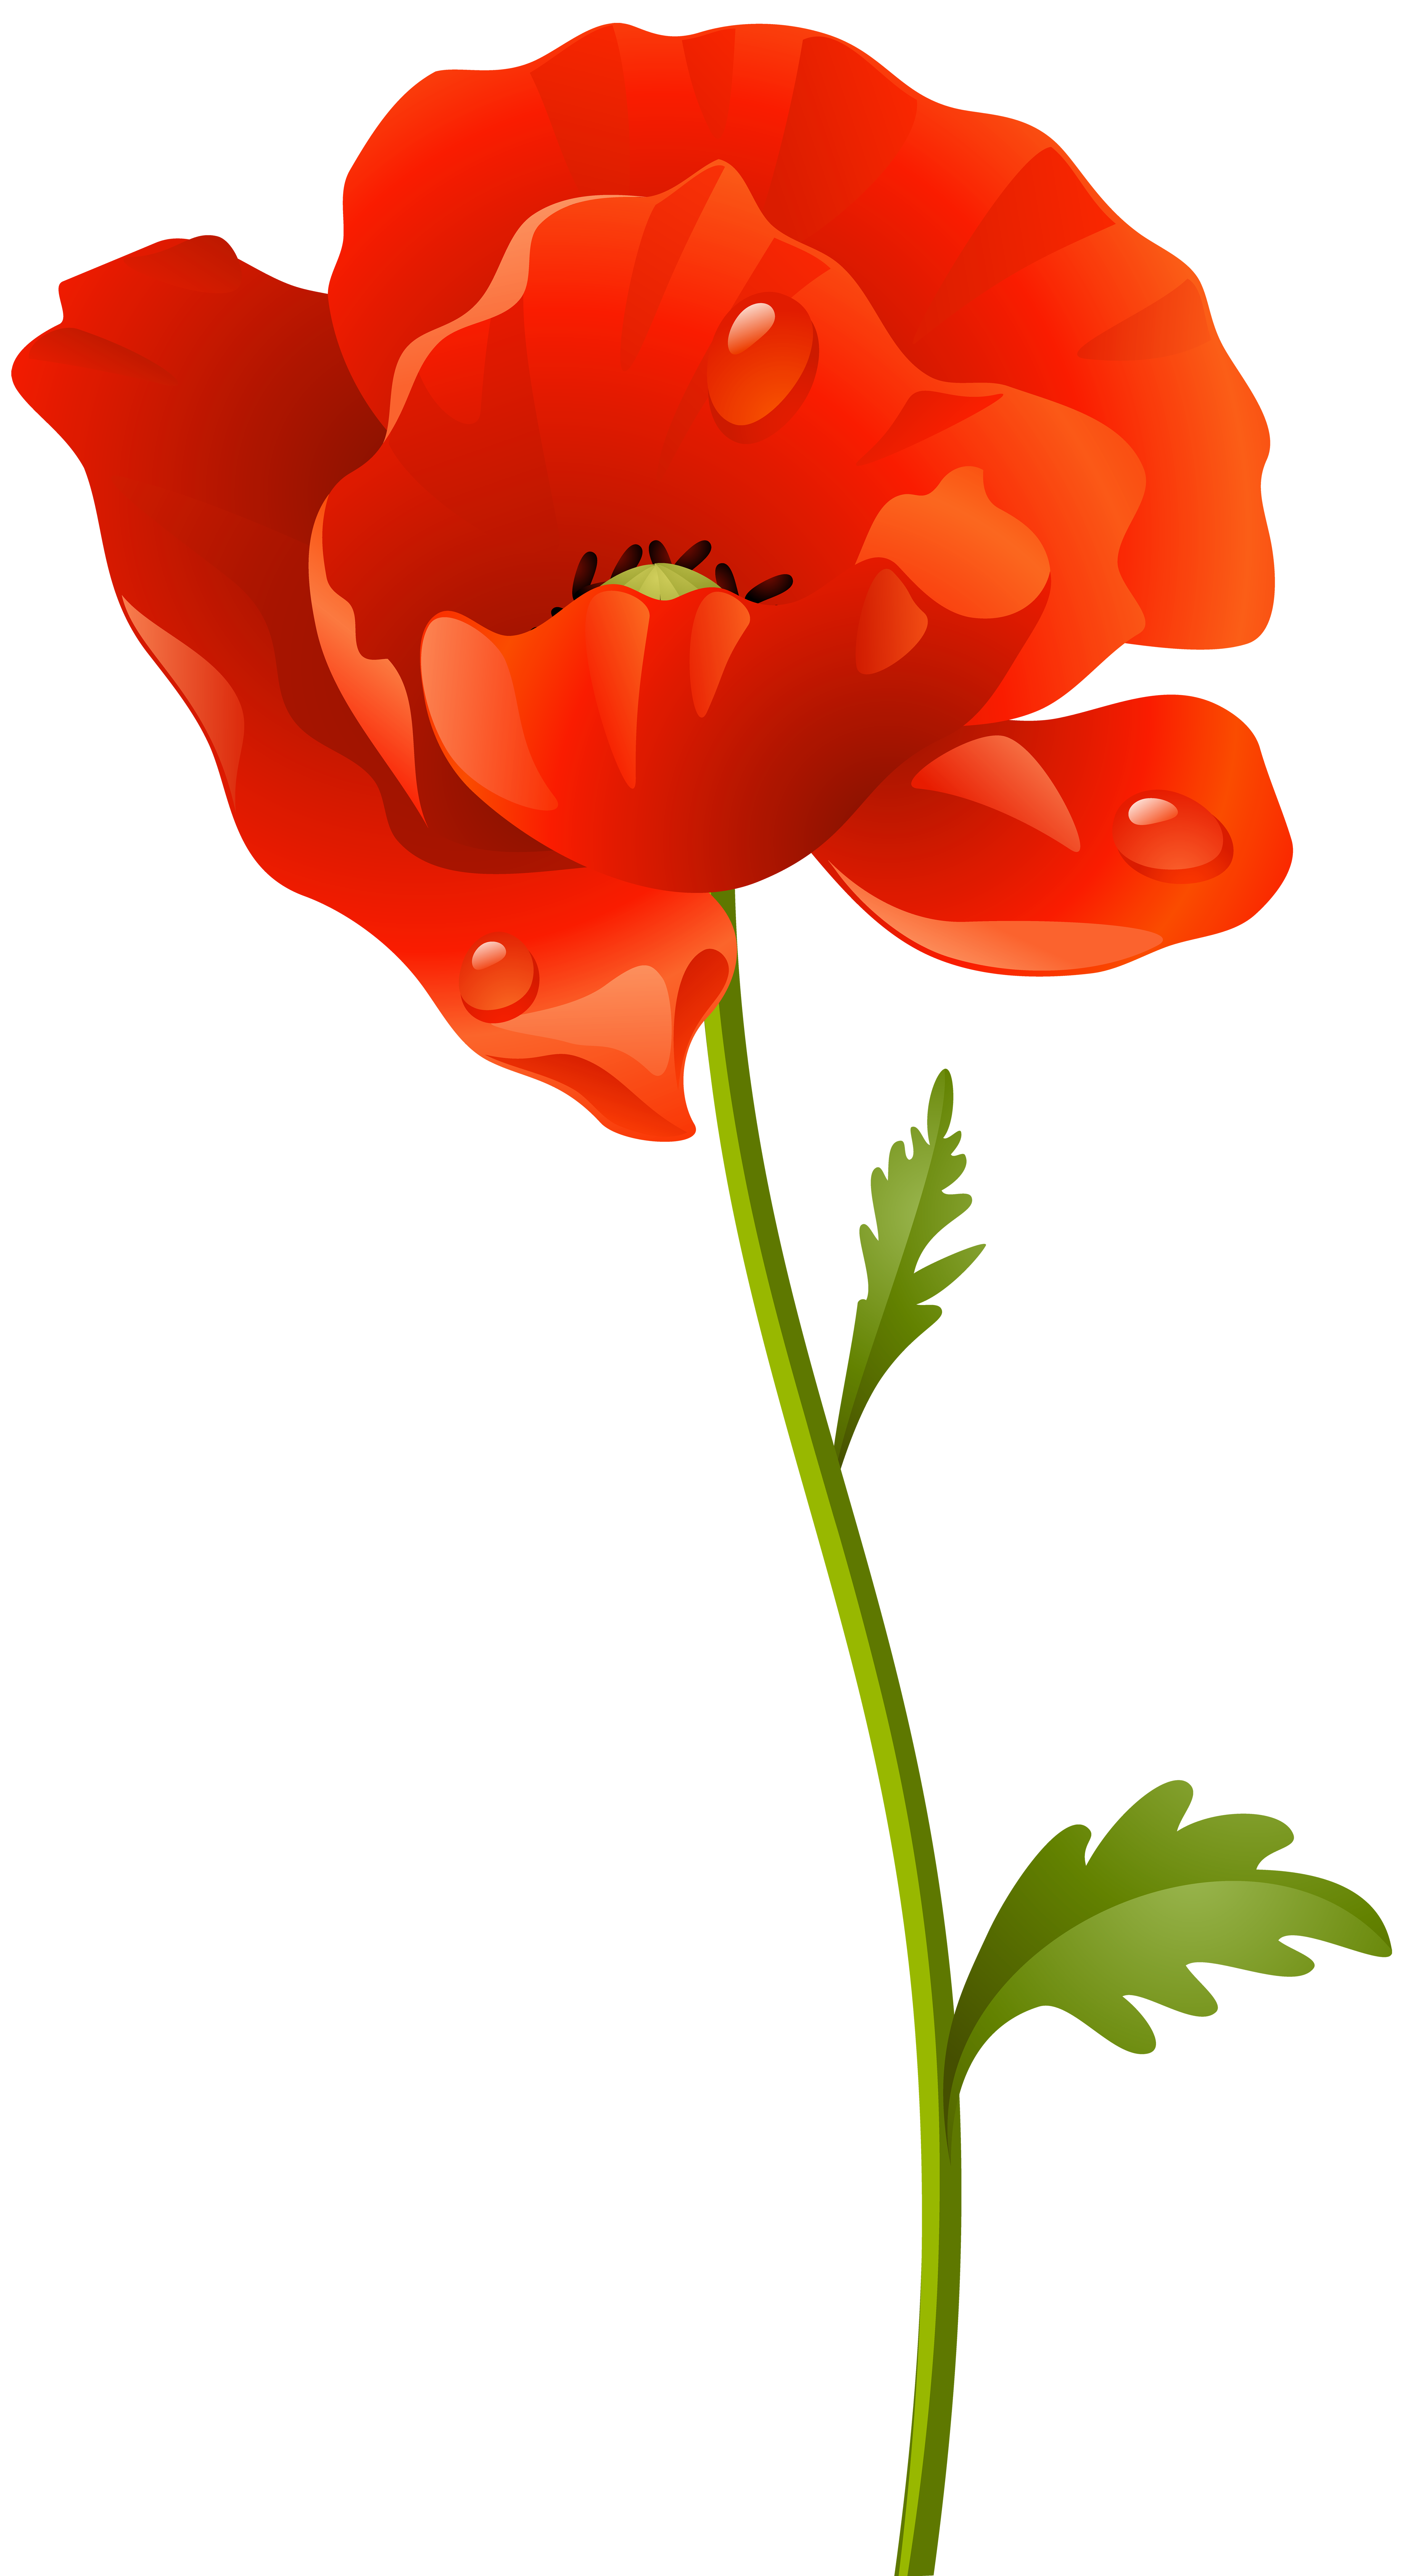 Red Poppy Png & Free Red Poppy.png Transparent Images #32540.